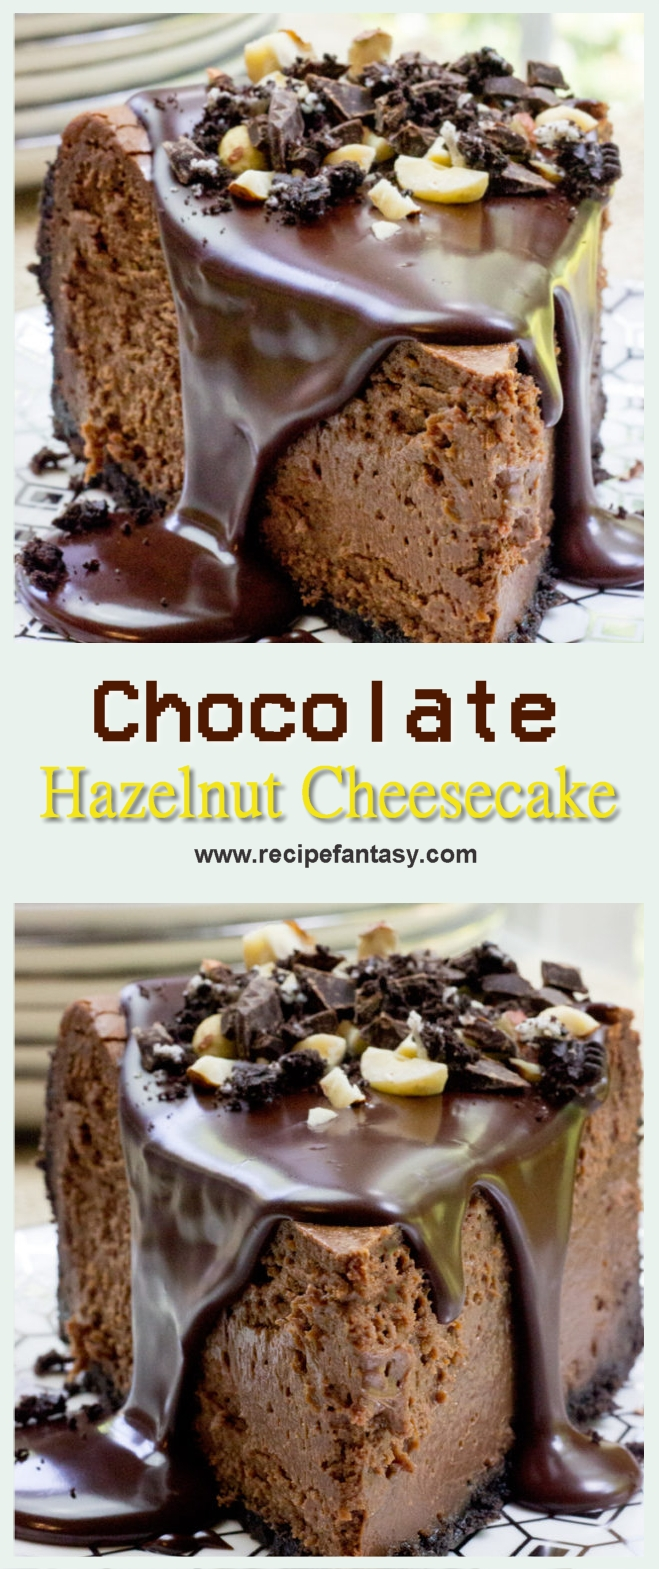 Rich Chocolate Hazelnut Cheesecake